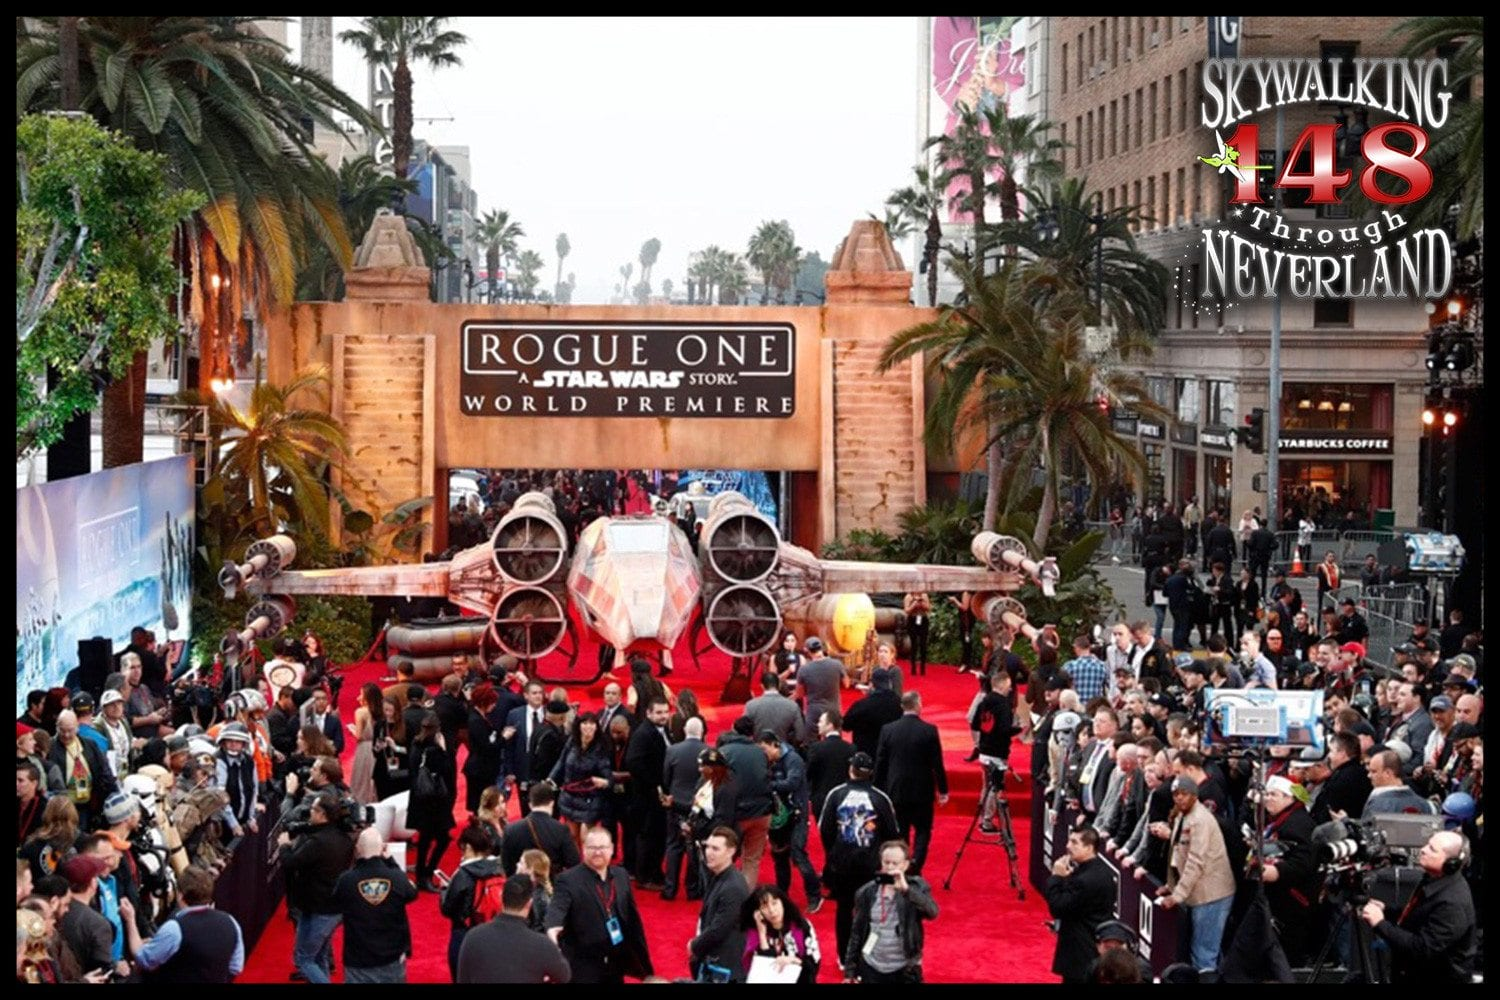 Rogue One release